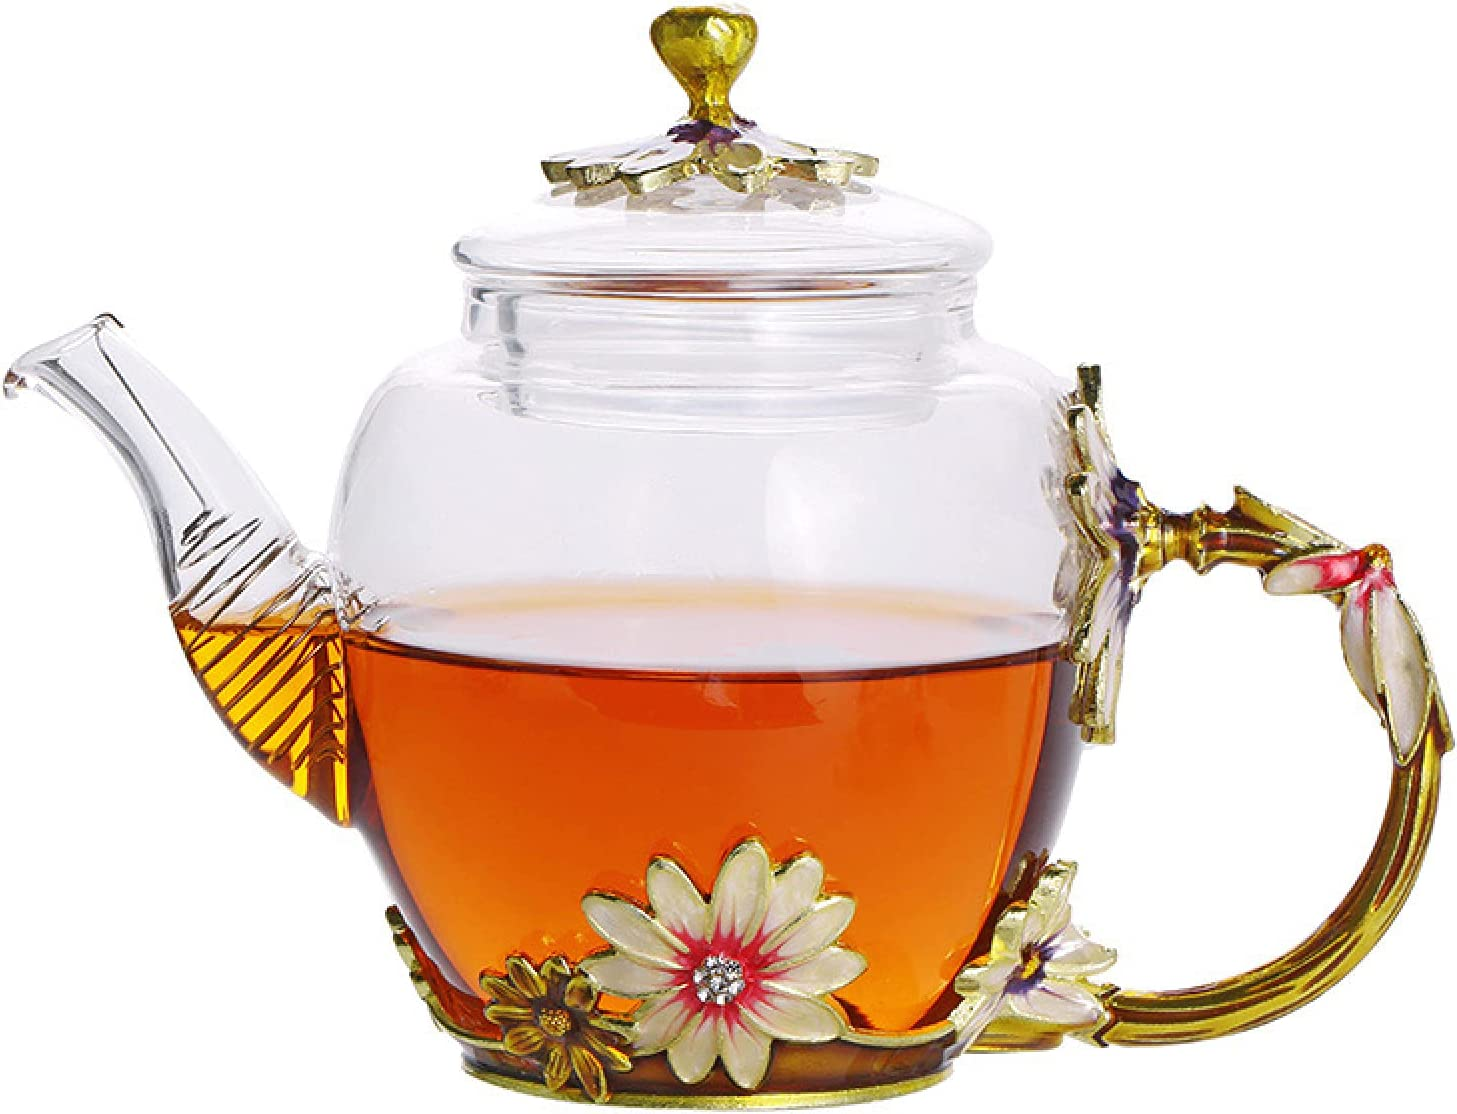 Tea Service Made Outlet sale feature of Matt Glaze A for Gifts The Four Cups Superior Jug